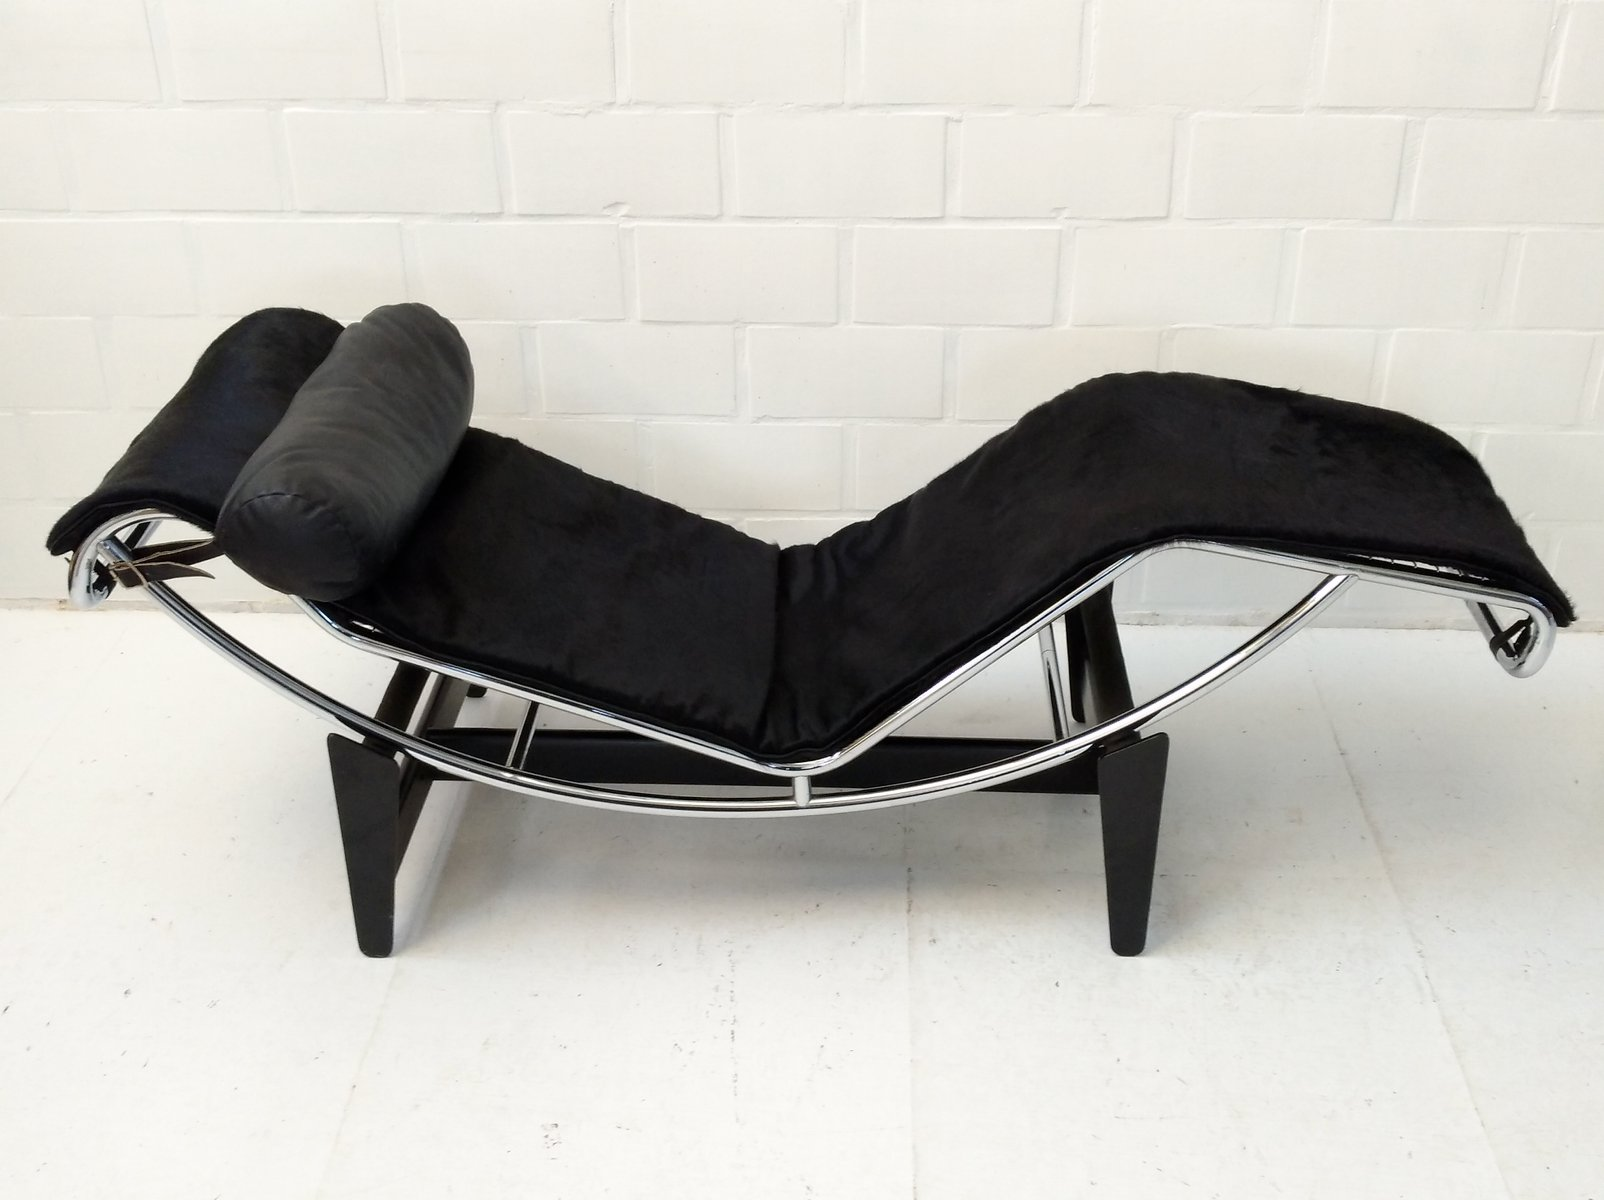 Early lc4 chaise longue by le corbusier perriand for Chaise longue chilienne